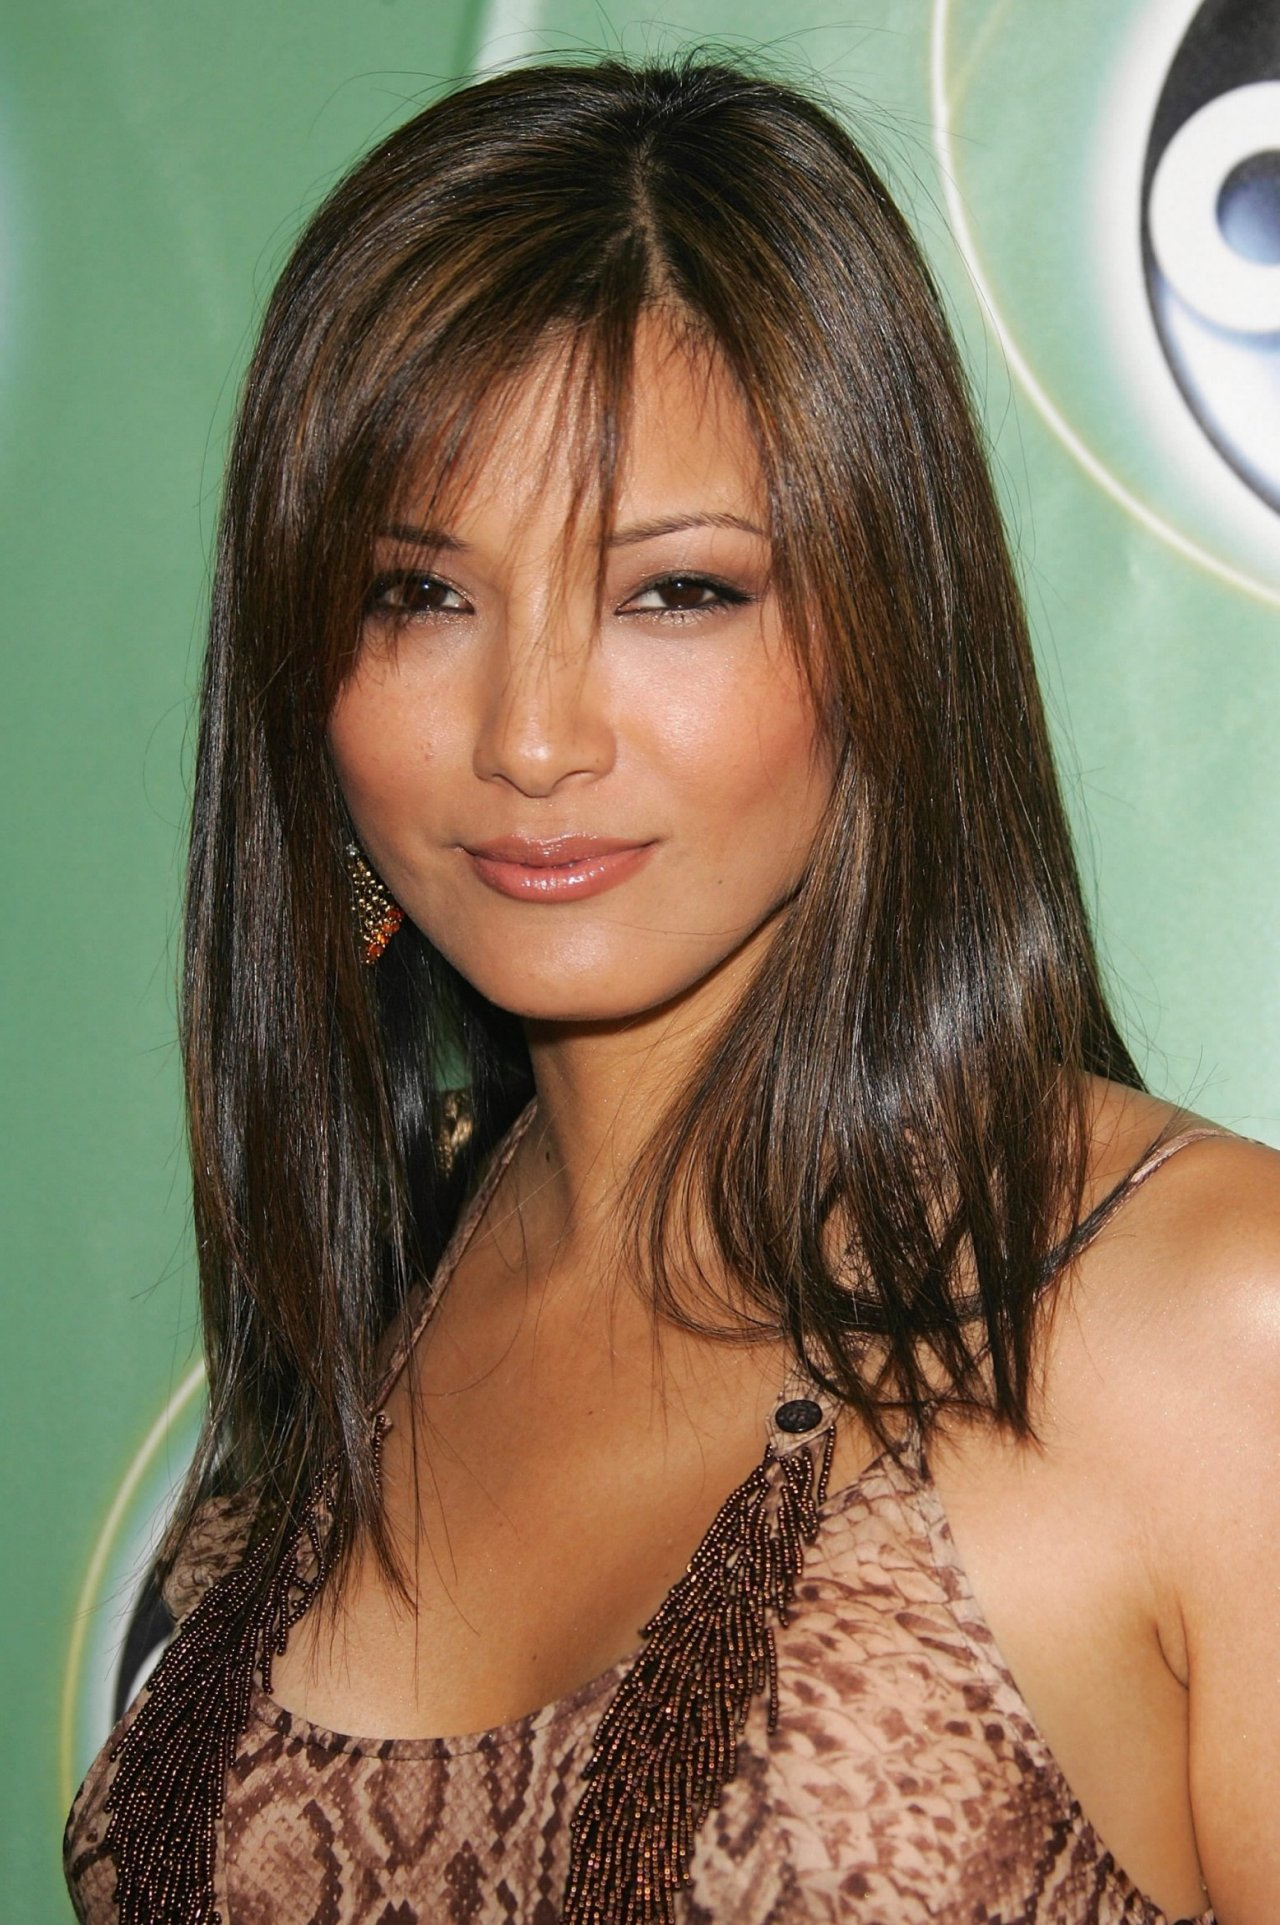 kelly hu filmskelly hu 2017, kelly hu биография, kelly hu 2002, kelly hu 100, kelly hu twitter, kelly hu imdb, kelly hu vs maggie q, kelly hu wikipédia, kelly hu instagram, kelly hu wdw, kelly hu marvel, kelly hu friday the 13th, kelly hu maxim photos, kelly hu voice actor, kelly hu films, kelly hu photo, kelly hu facebook, kelly hu the librarian quest for the spear, kelly hu interview, kelly hu photos hot